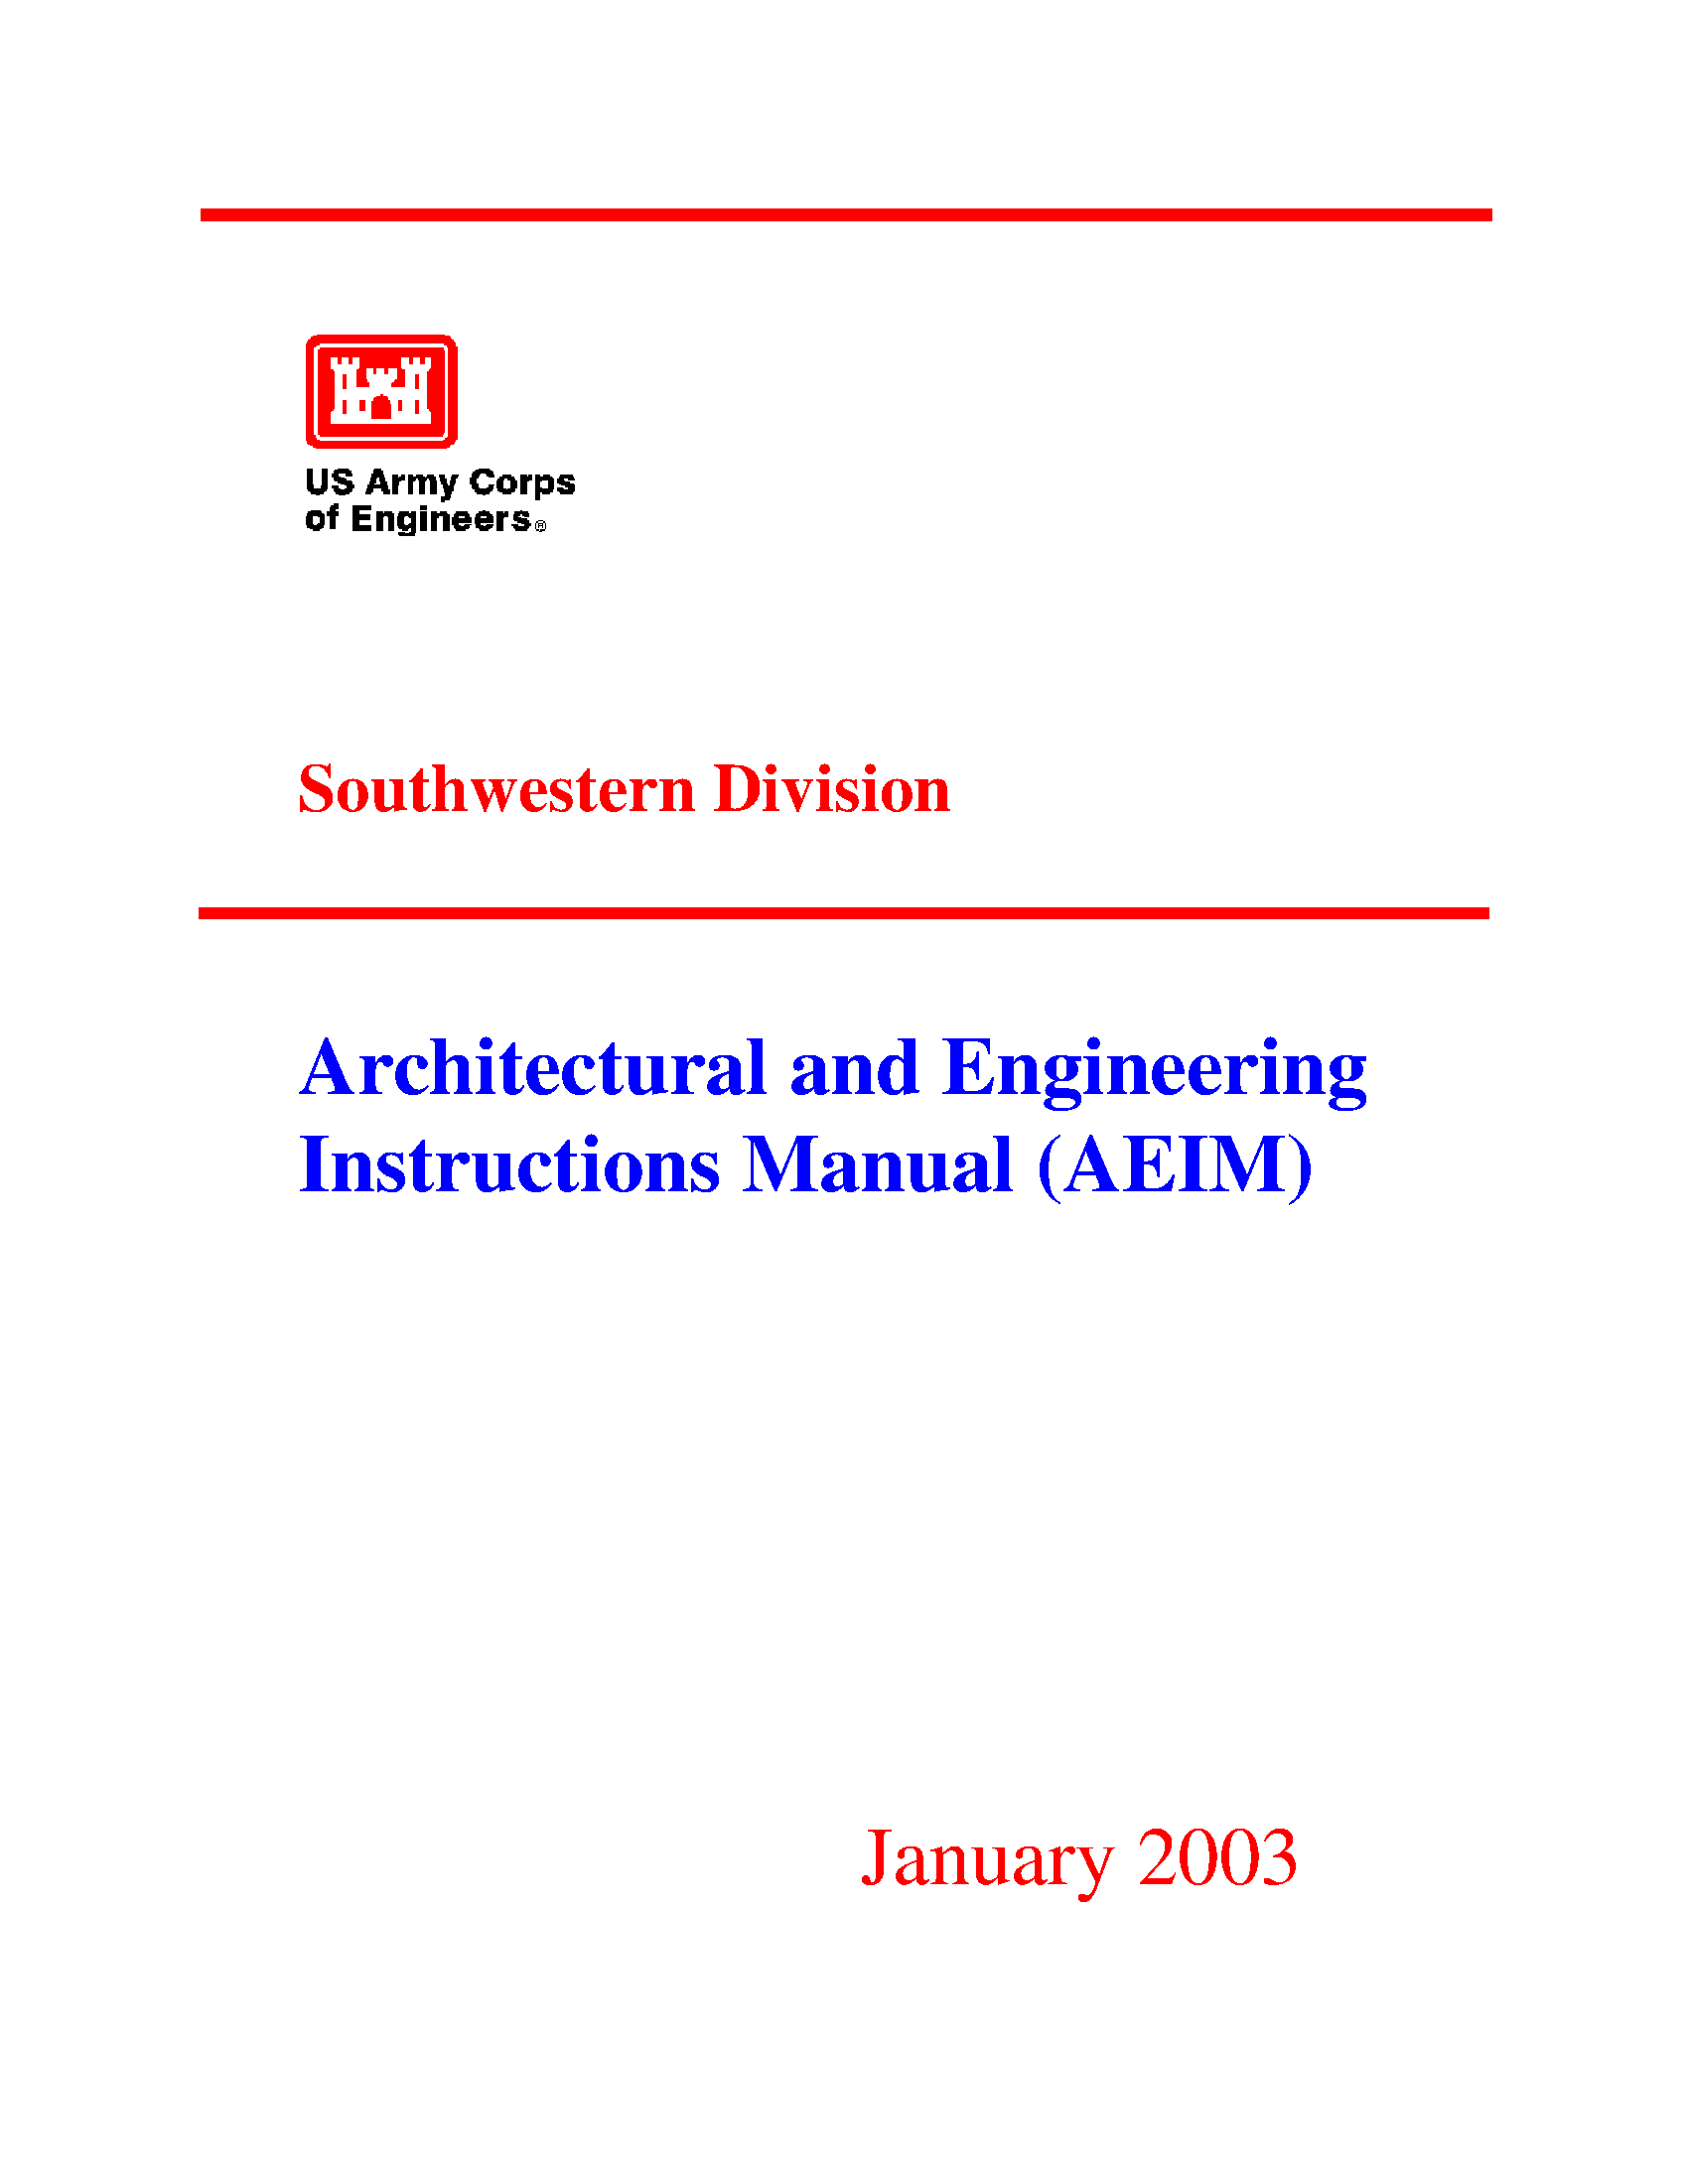 architectural and engineering instructions manual aeim booklets rh usace contentdm oclc org usace cofferdam design manual usace design manual for sheet pile walls